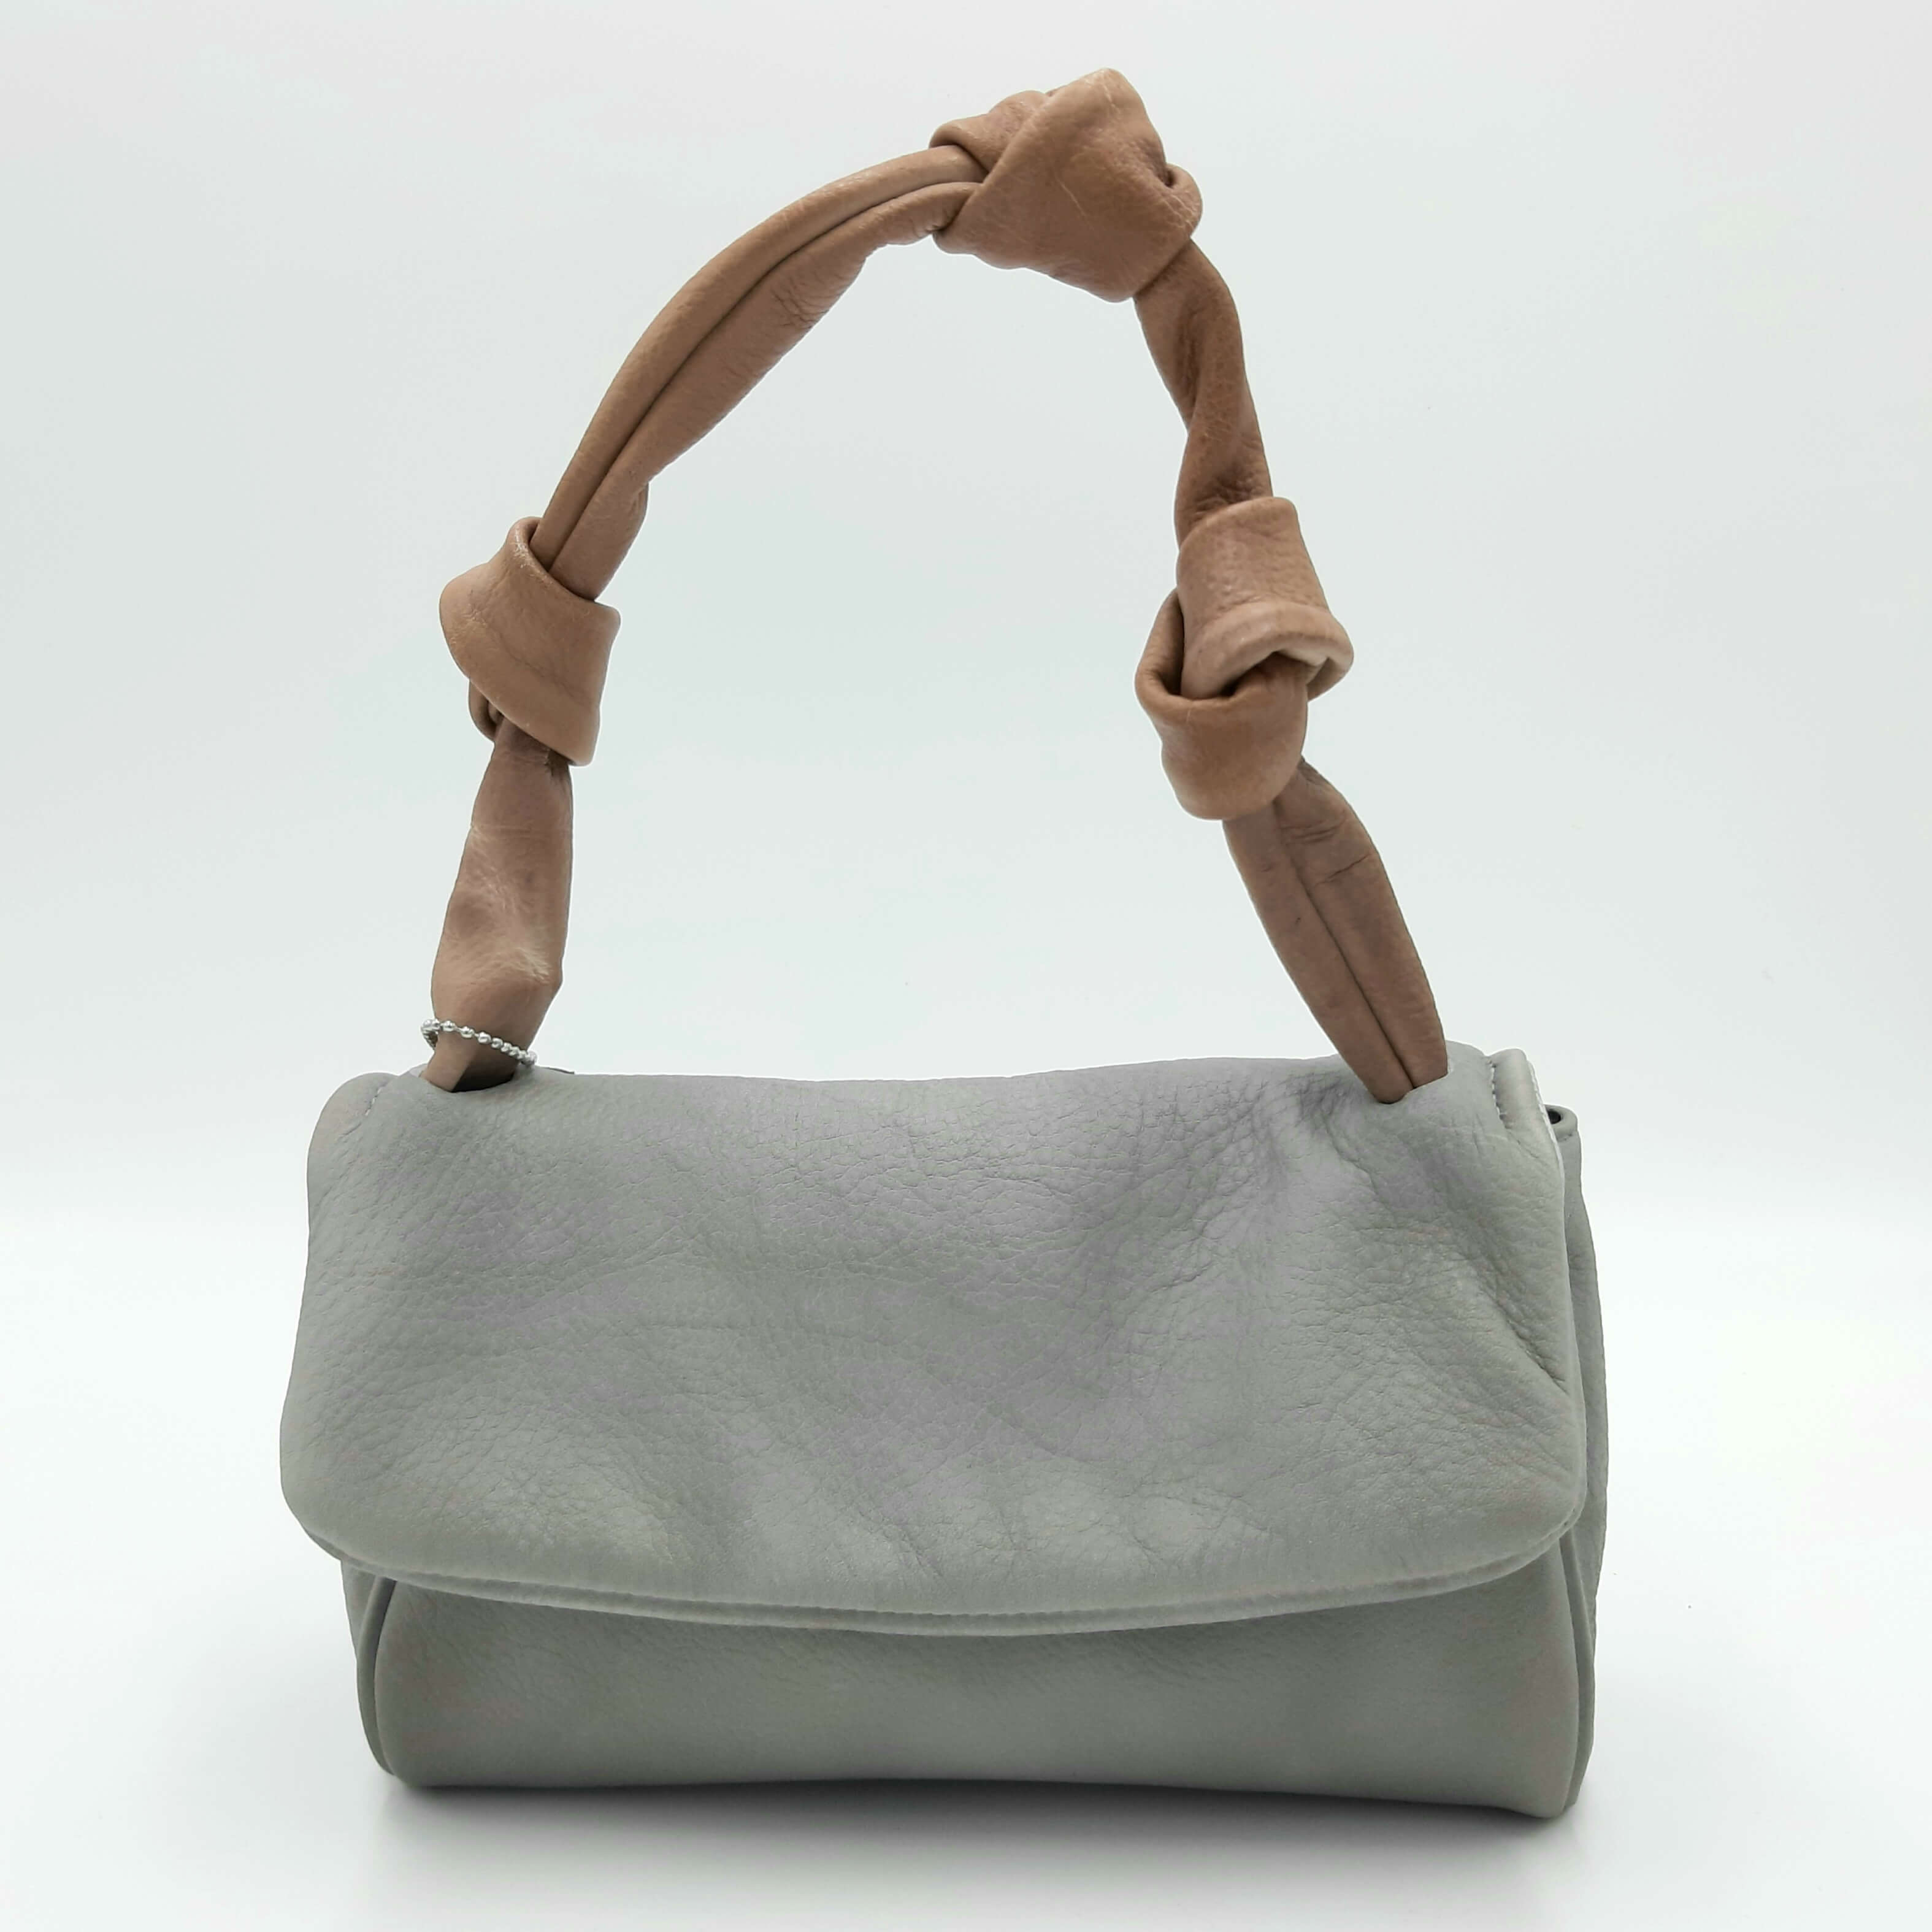 Borsa a spalla grigia in pelle lavata Collection Privée